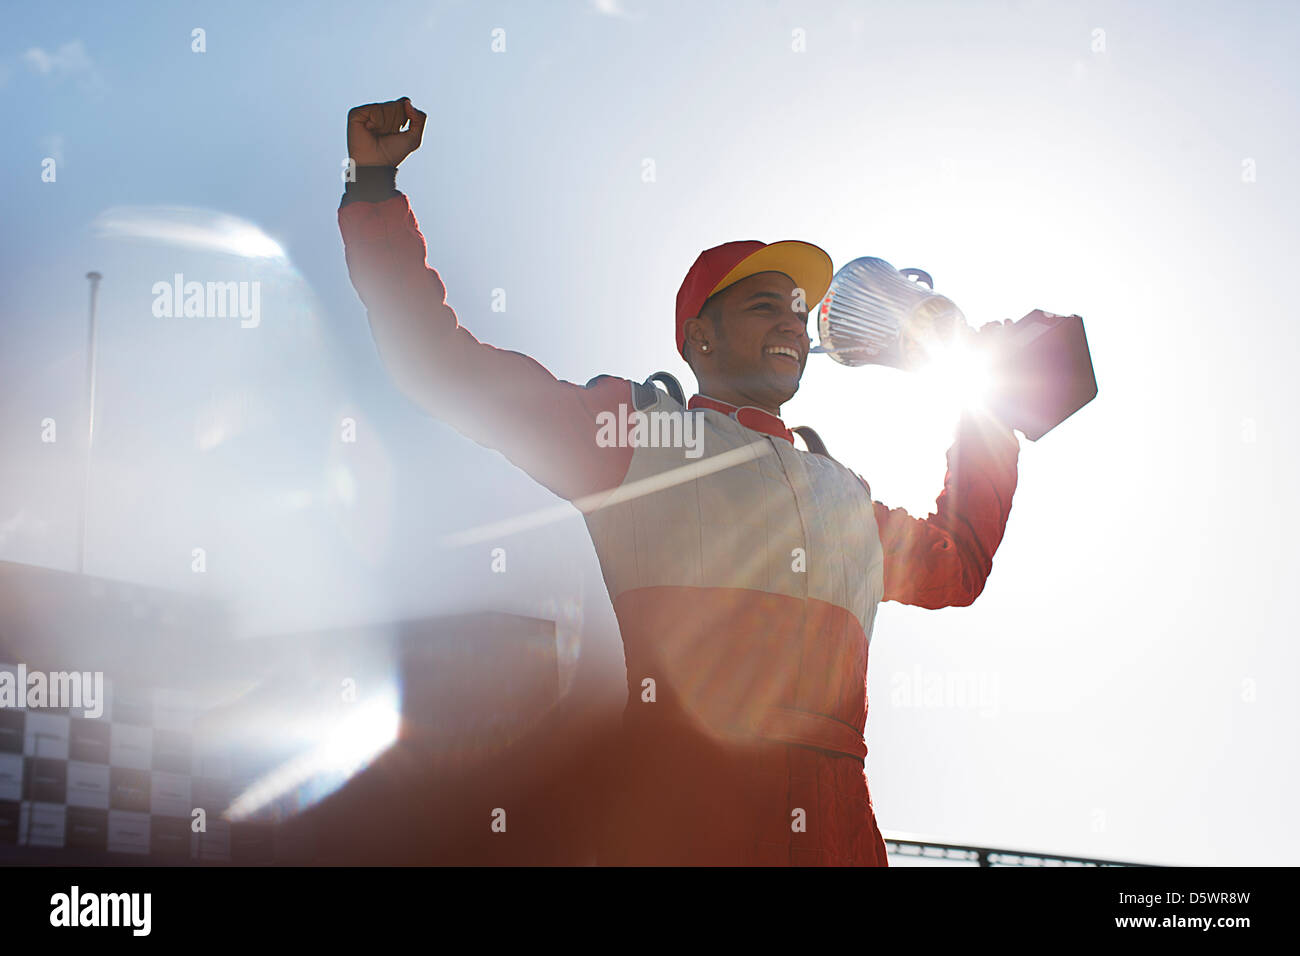 Cheering racer holding trophy on track Stock Photo